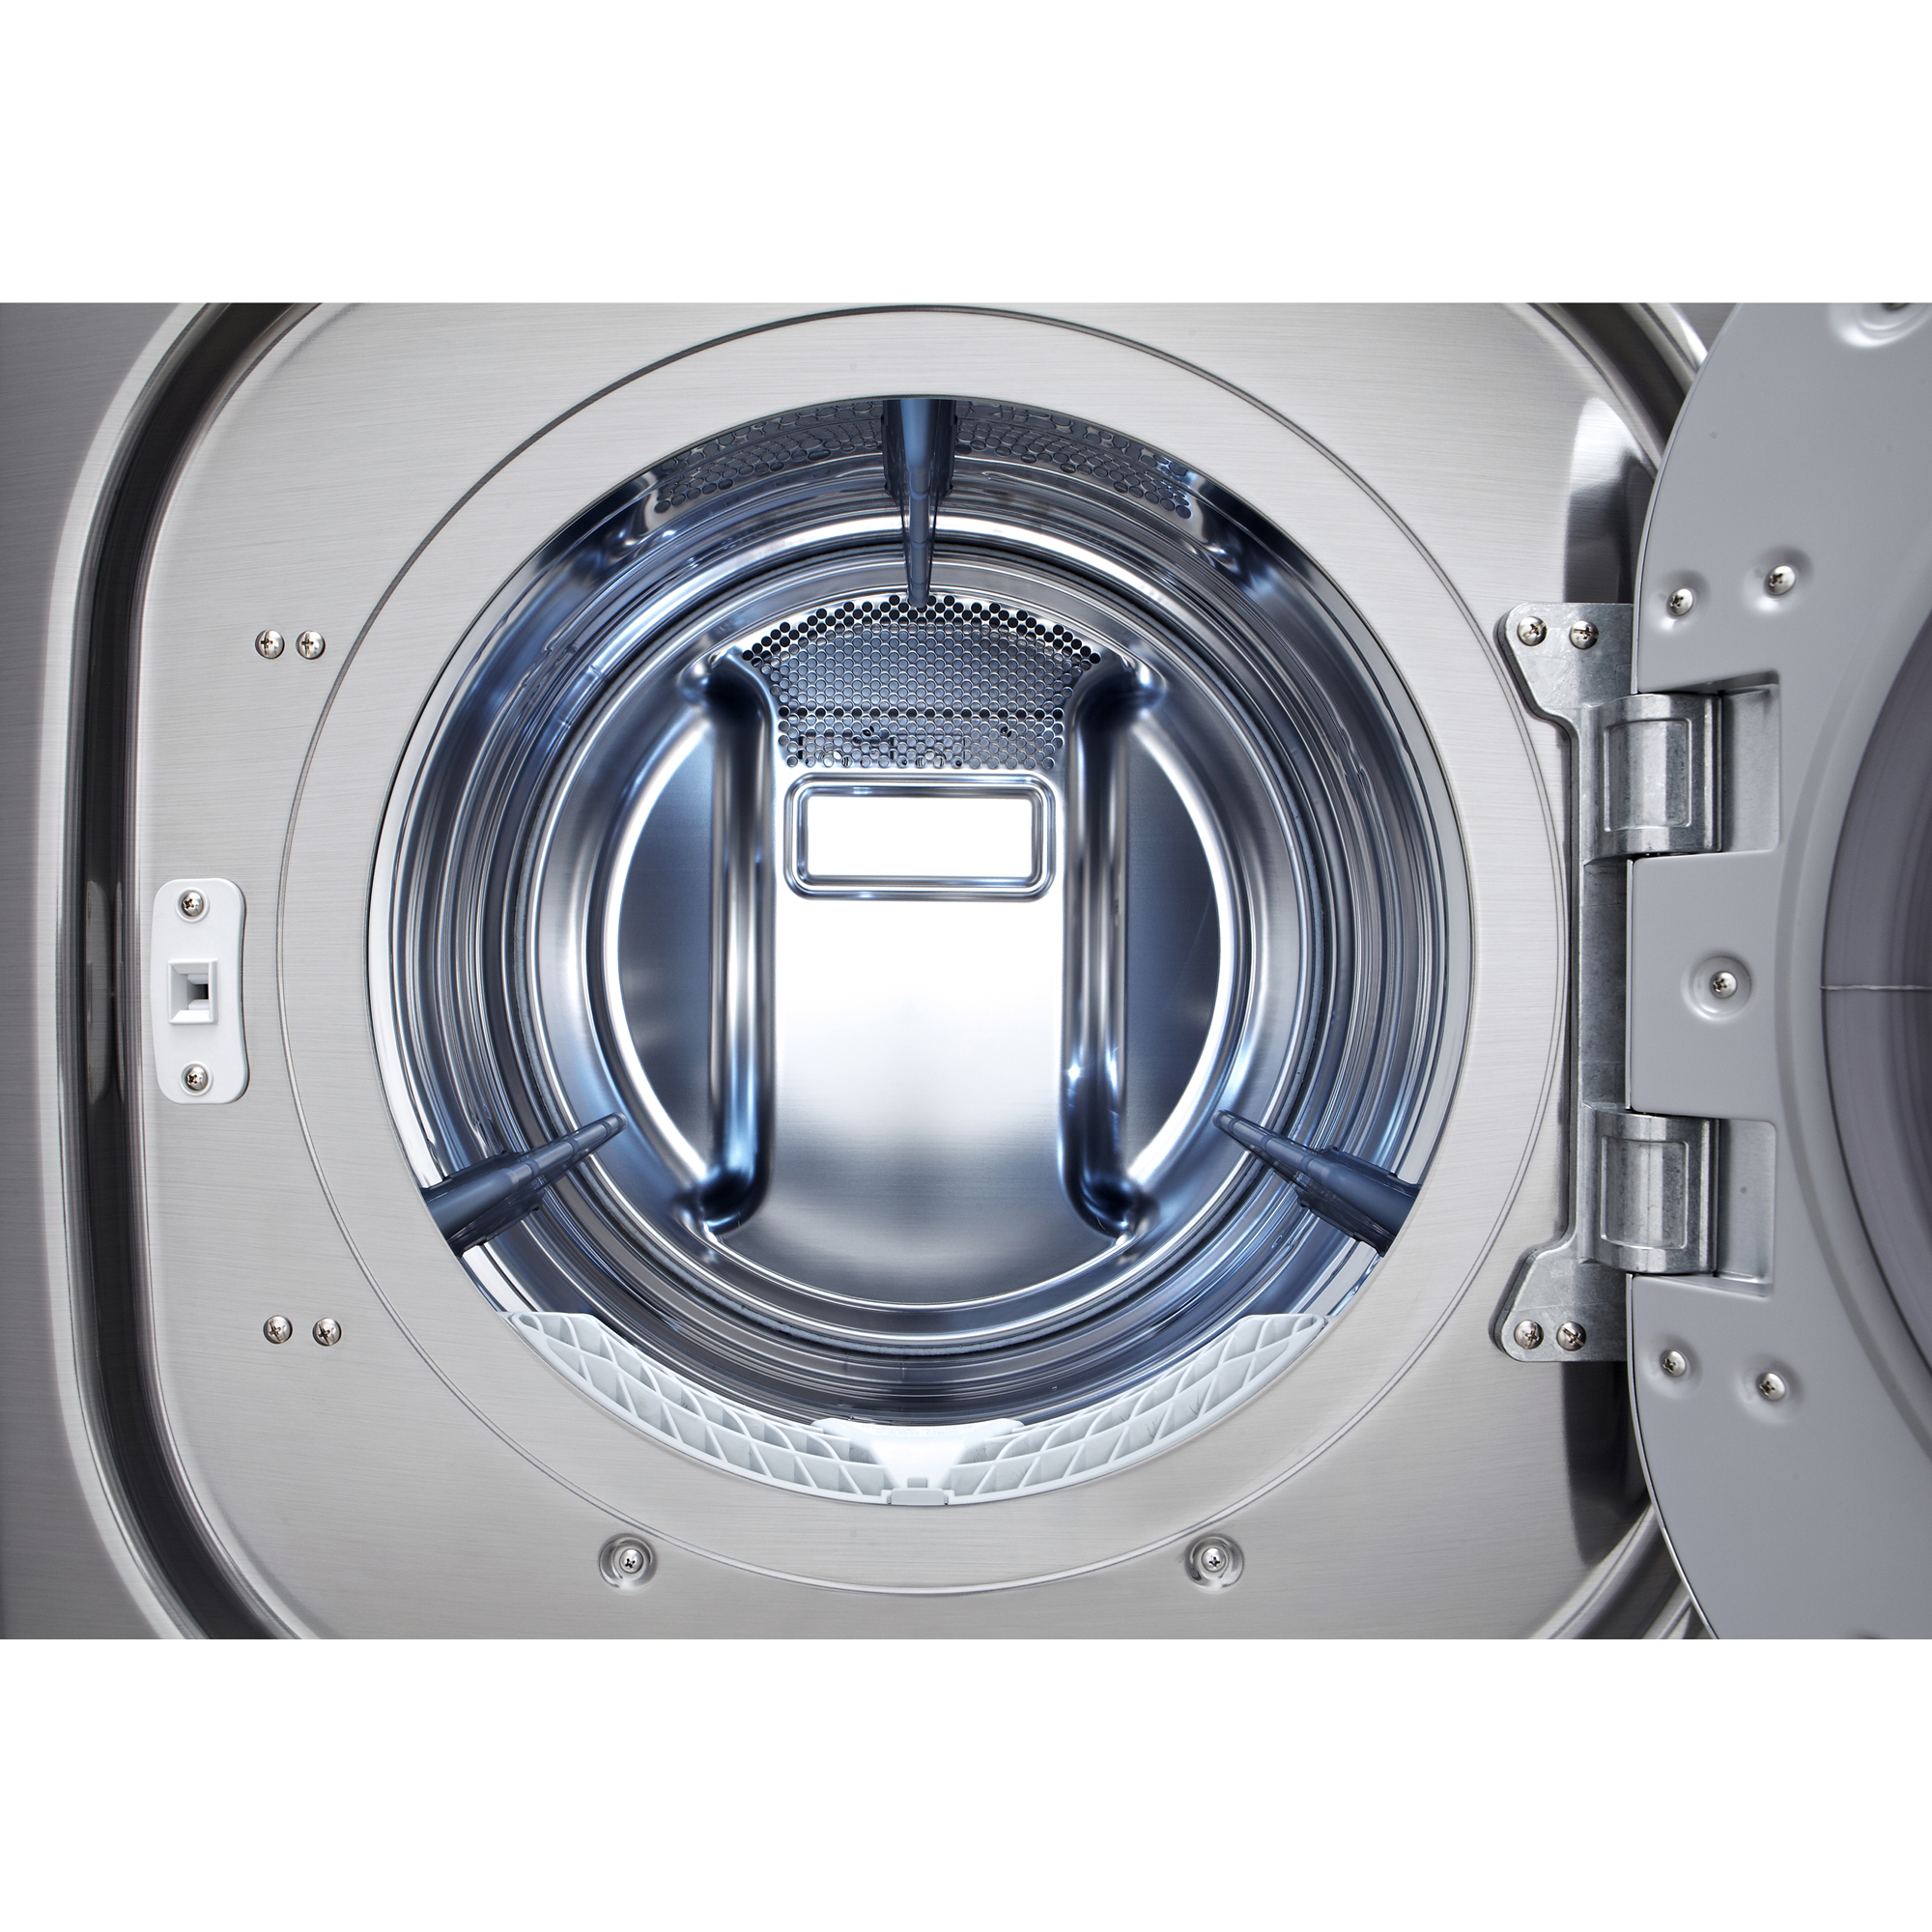 LG DLHX4072V 7.3 cu. ft. Capacity Front Load Dryer w/ EcoHybrid™ Technology - Graphite Steel